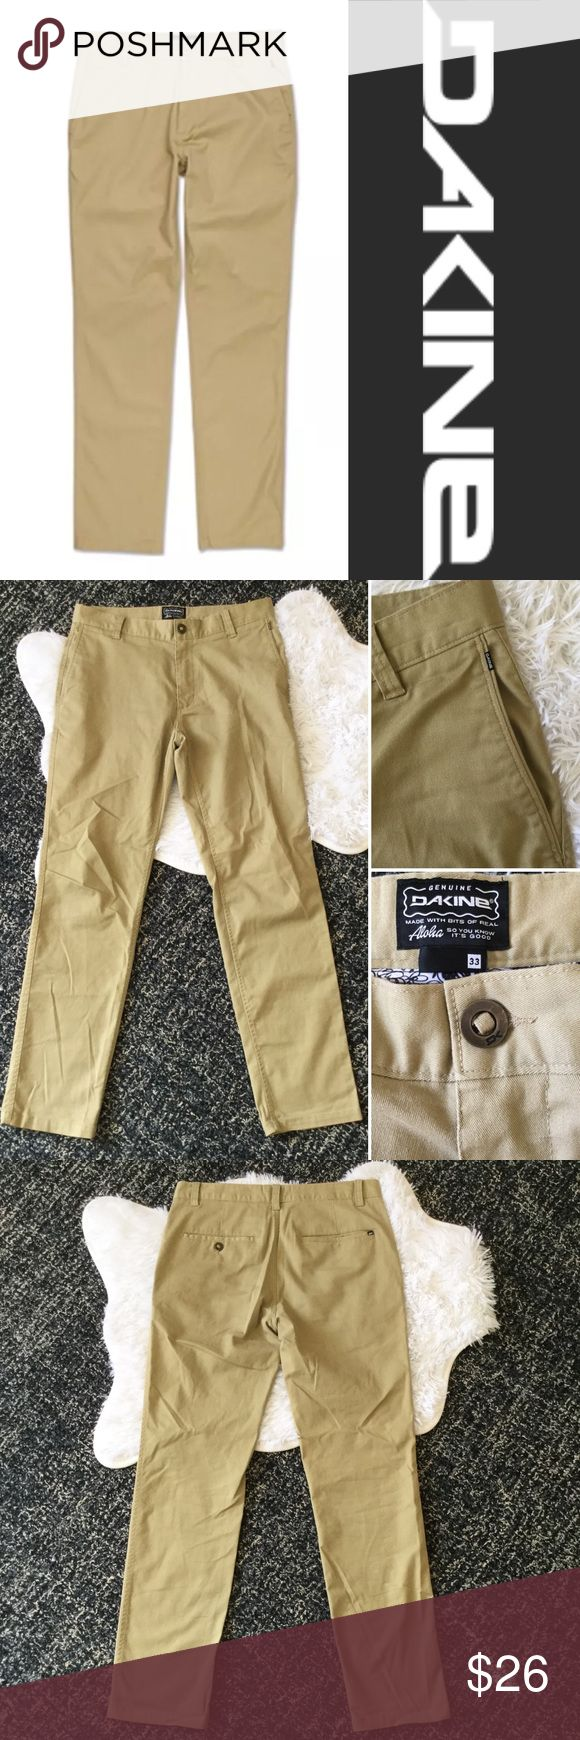 """DAKINE Downtown Chino Khaki Pant Sz 33 Dakine Chino Khaki Pant, Sz 33. Great pre-owned condition, light pilling & some wrinkles from storage. Style #10000081. Front zip with button closure, front slant pockets, back pockets. Measurements flat—waist: 17.5"""", inseam: about 32.5"""", front rise: about 10.75"""", leg opening: 7.5"""". Smoke free home. No trades, please. Last photo shows color best.  👉Visit my closet for more athletic & outdoor clothing! Dakine Pants Chinos & Khakis"""